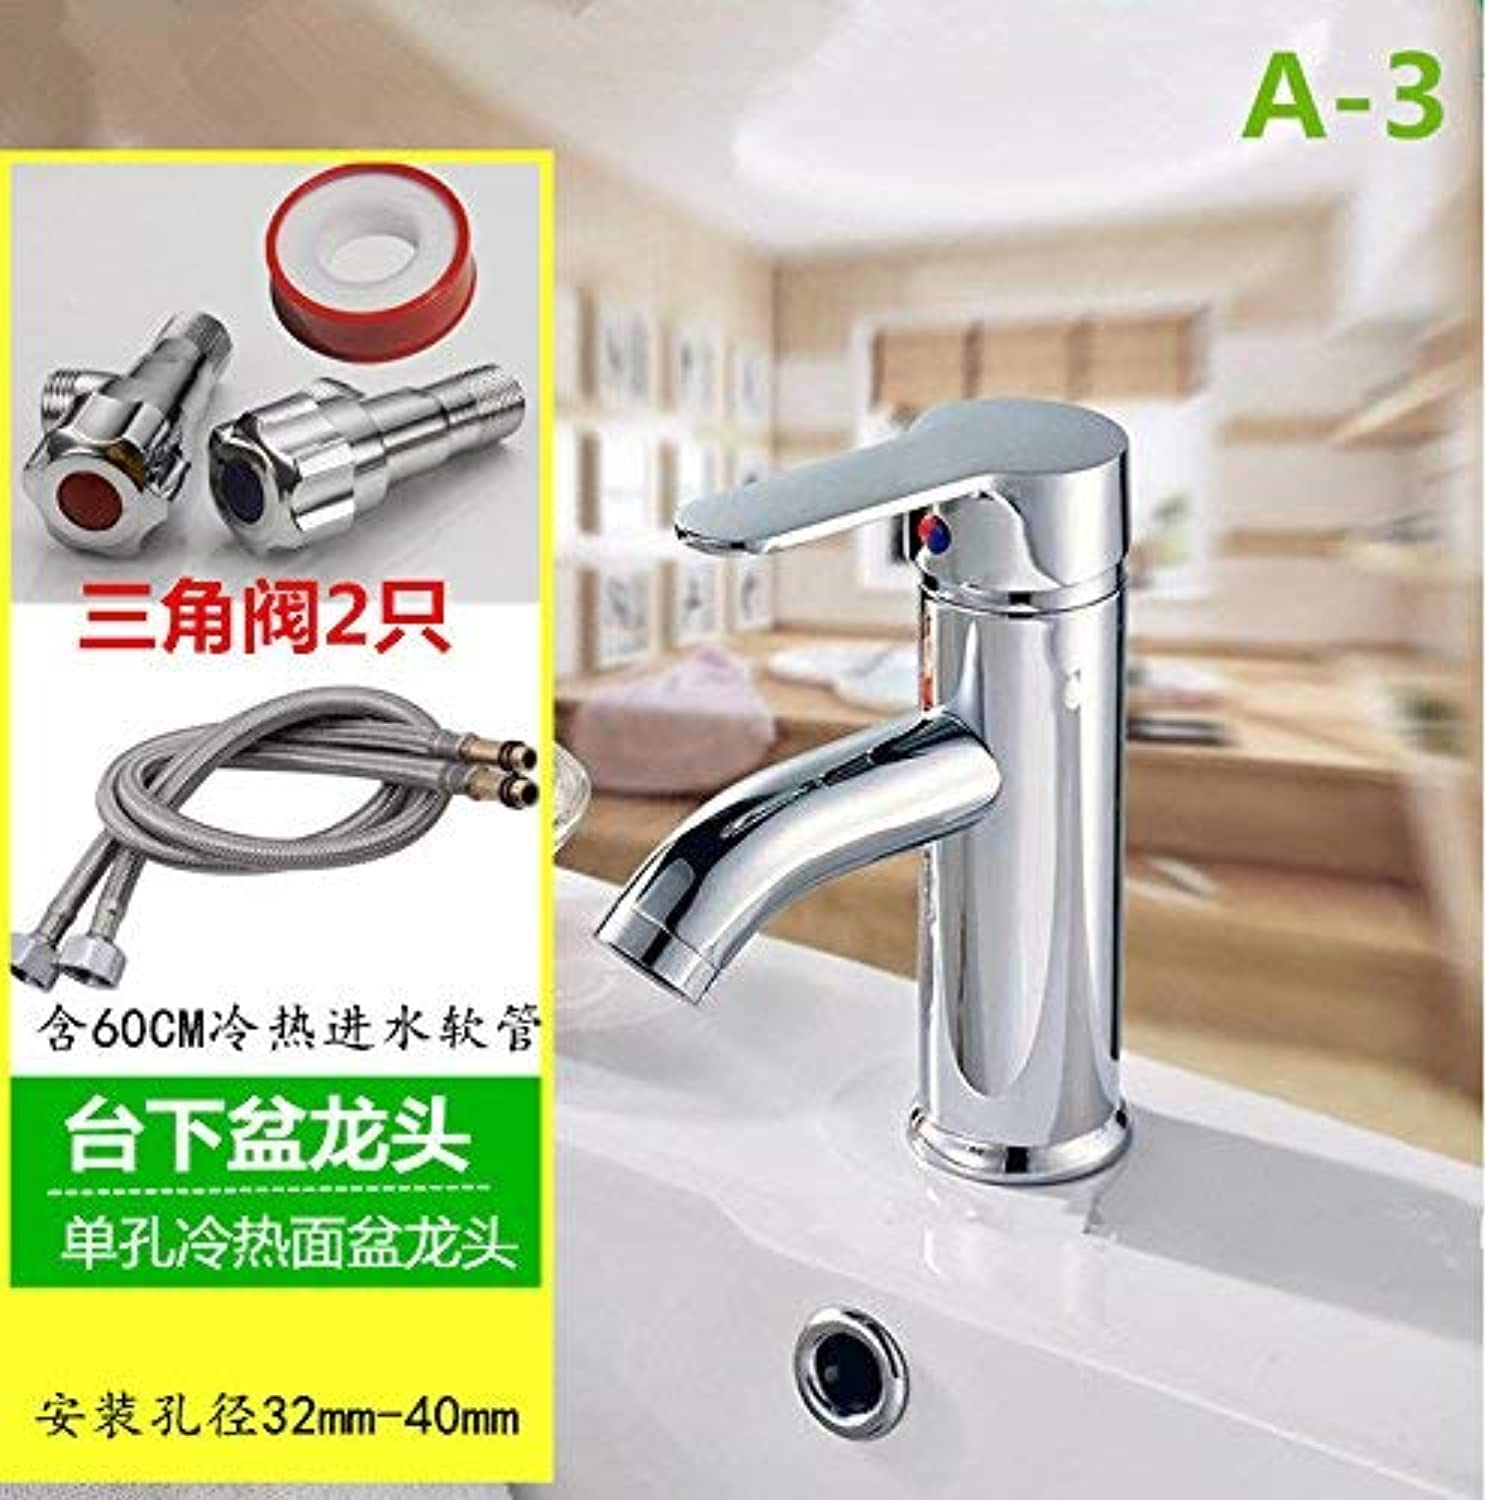 Oudan Basin Mixer Tap Bathroom Sink Faucet Basin taps and cold water Stainless Steel Copper SINGLE HOLE WASH-hand basin surface lowered basin mixer with high-,A-3